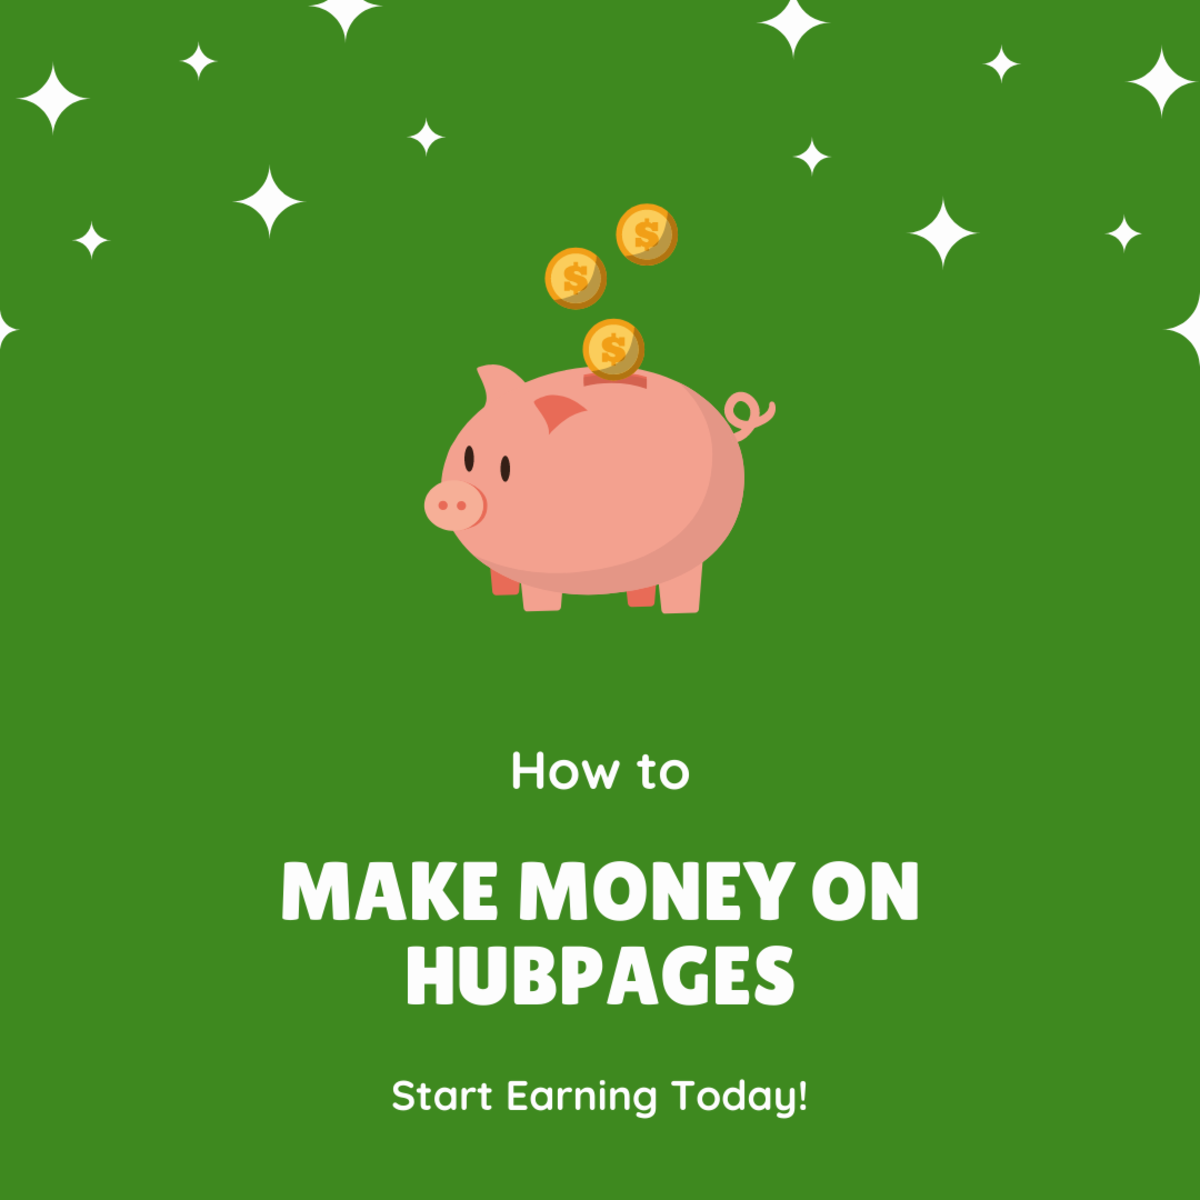 These three tips will help you get started on HubPages.